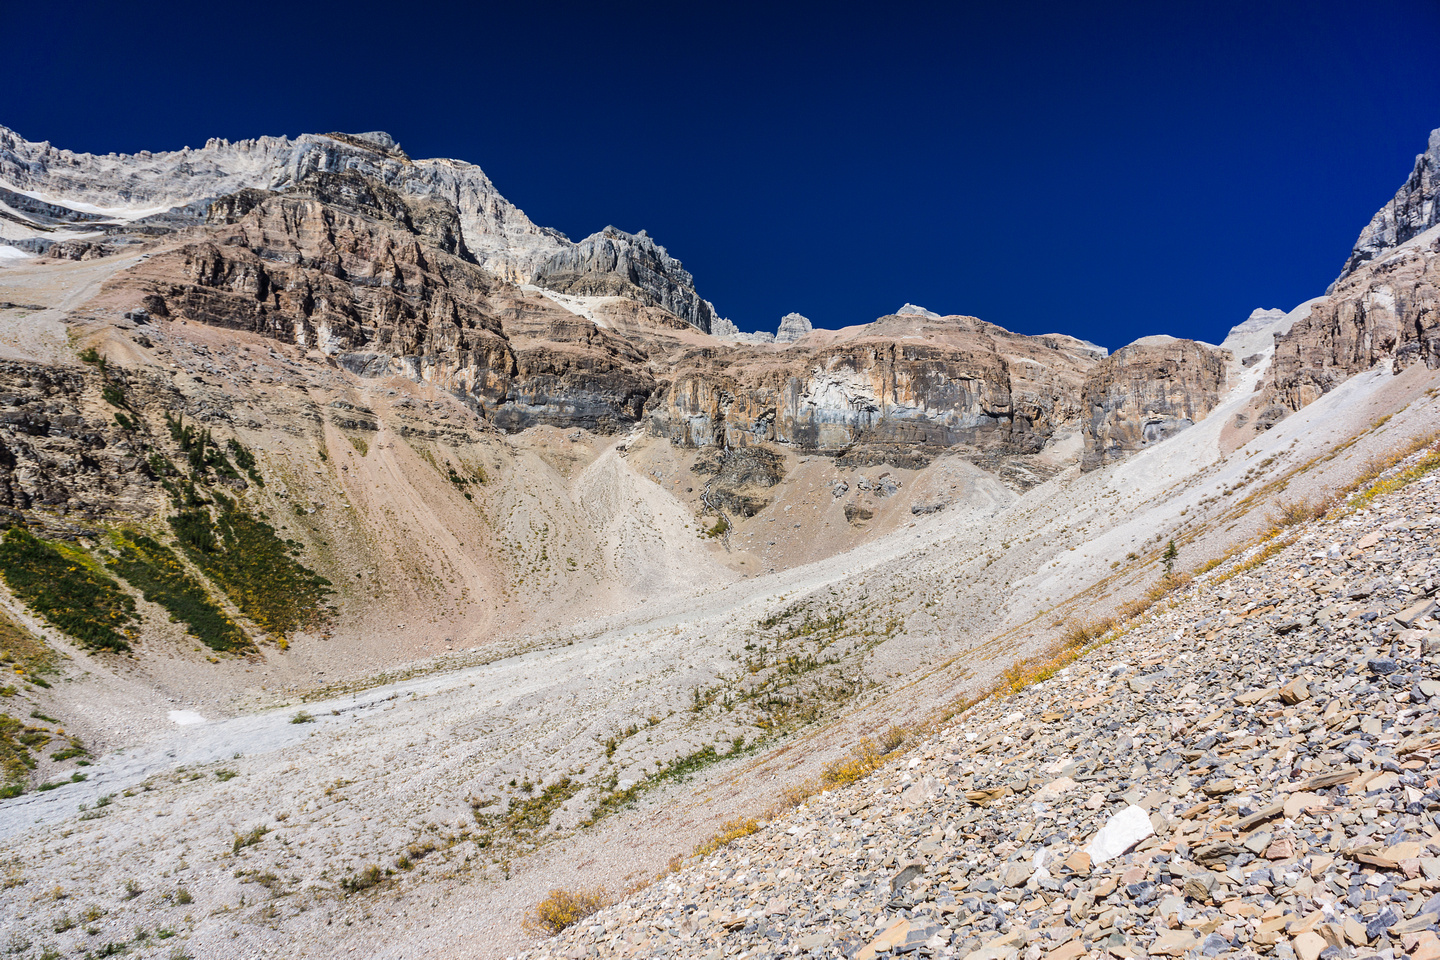 Looking ahead to a nice scree grunt! We go right of the buttress right of center on light colored scree.